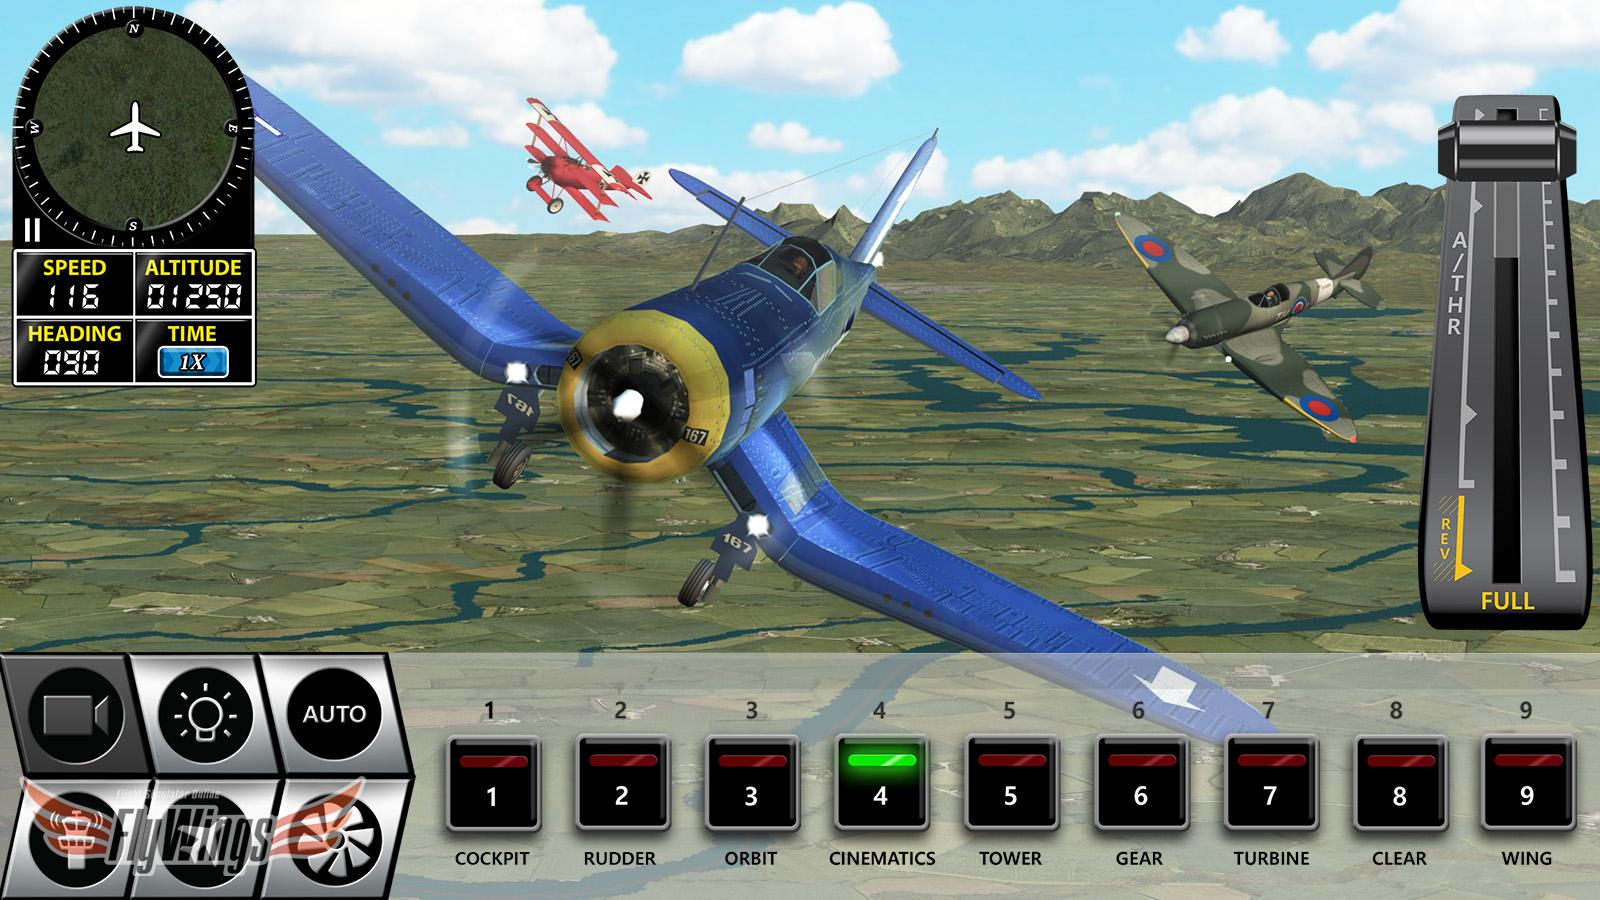 Bac S Simulation Flight Simulator X 2016 Air Hd Android Apps On Google Play